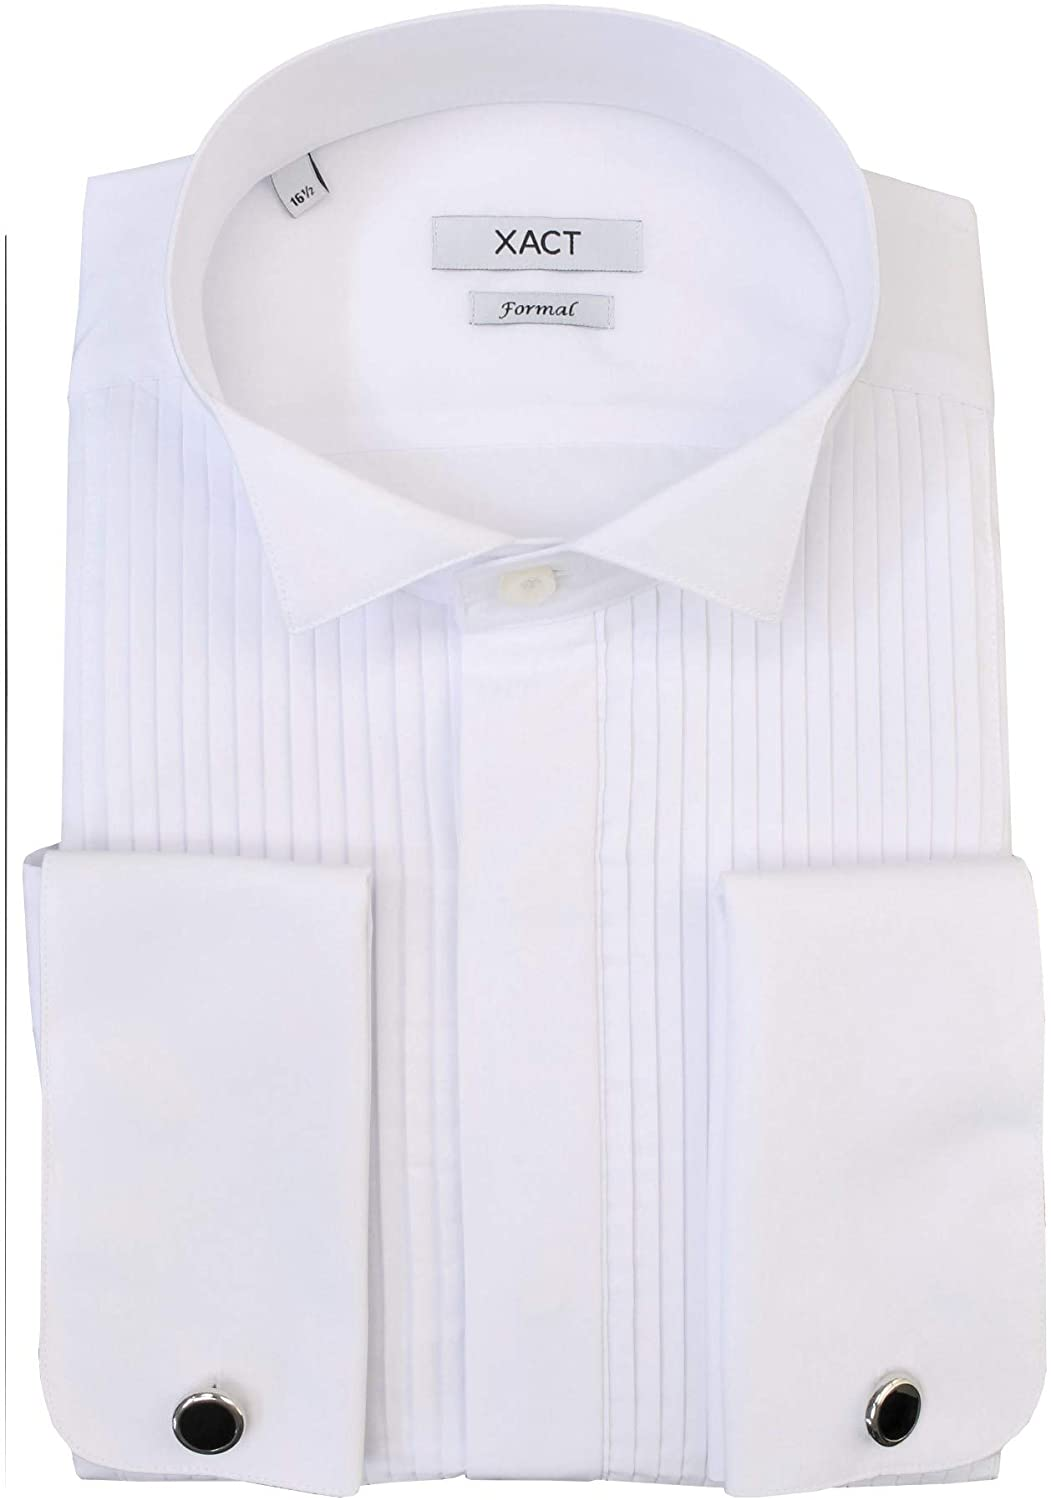 Xact Men's Formal Tuxedo/Dress Shirt with Double Cuff and Cuff Links